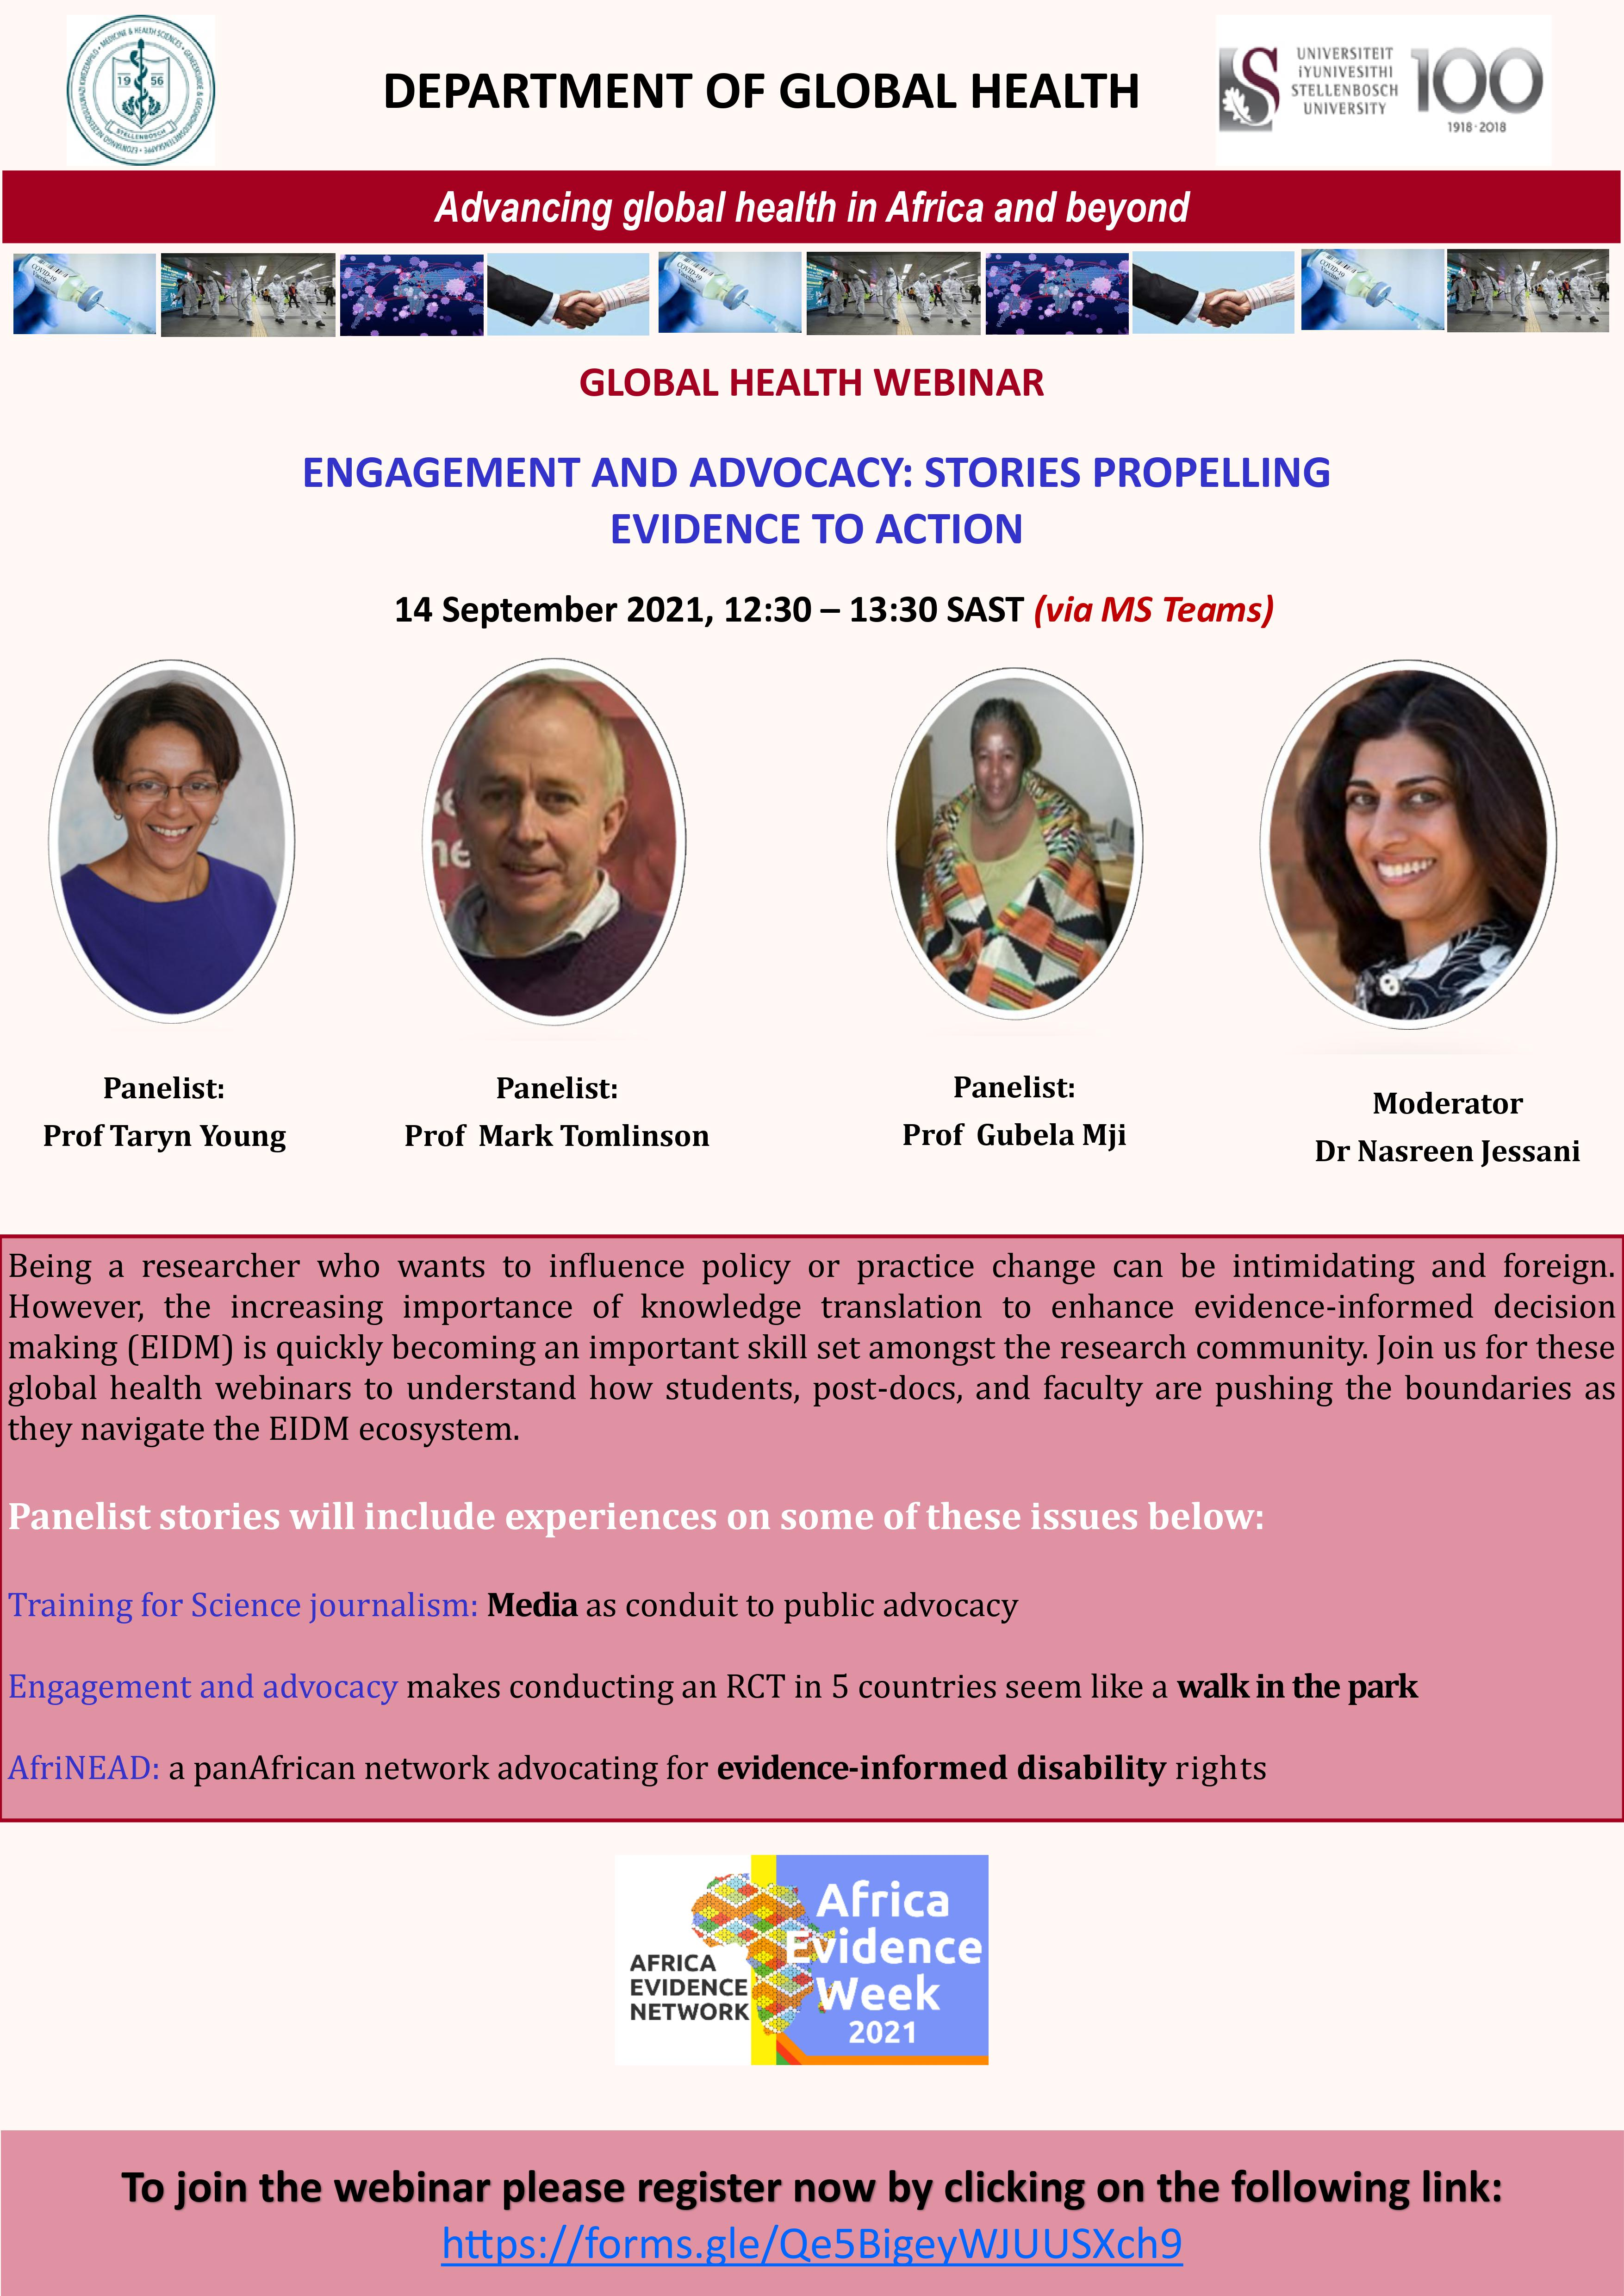 Africa Evidence Week 2021 event: Engagement and advocacy: stories propelling evidence to action